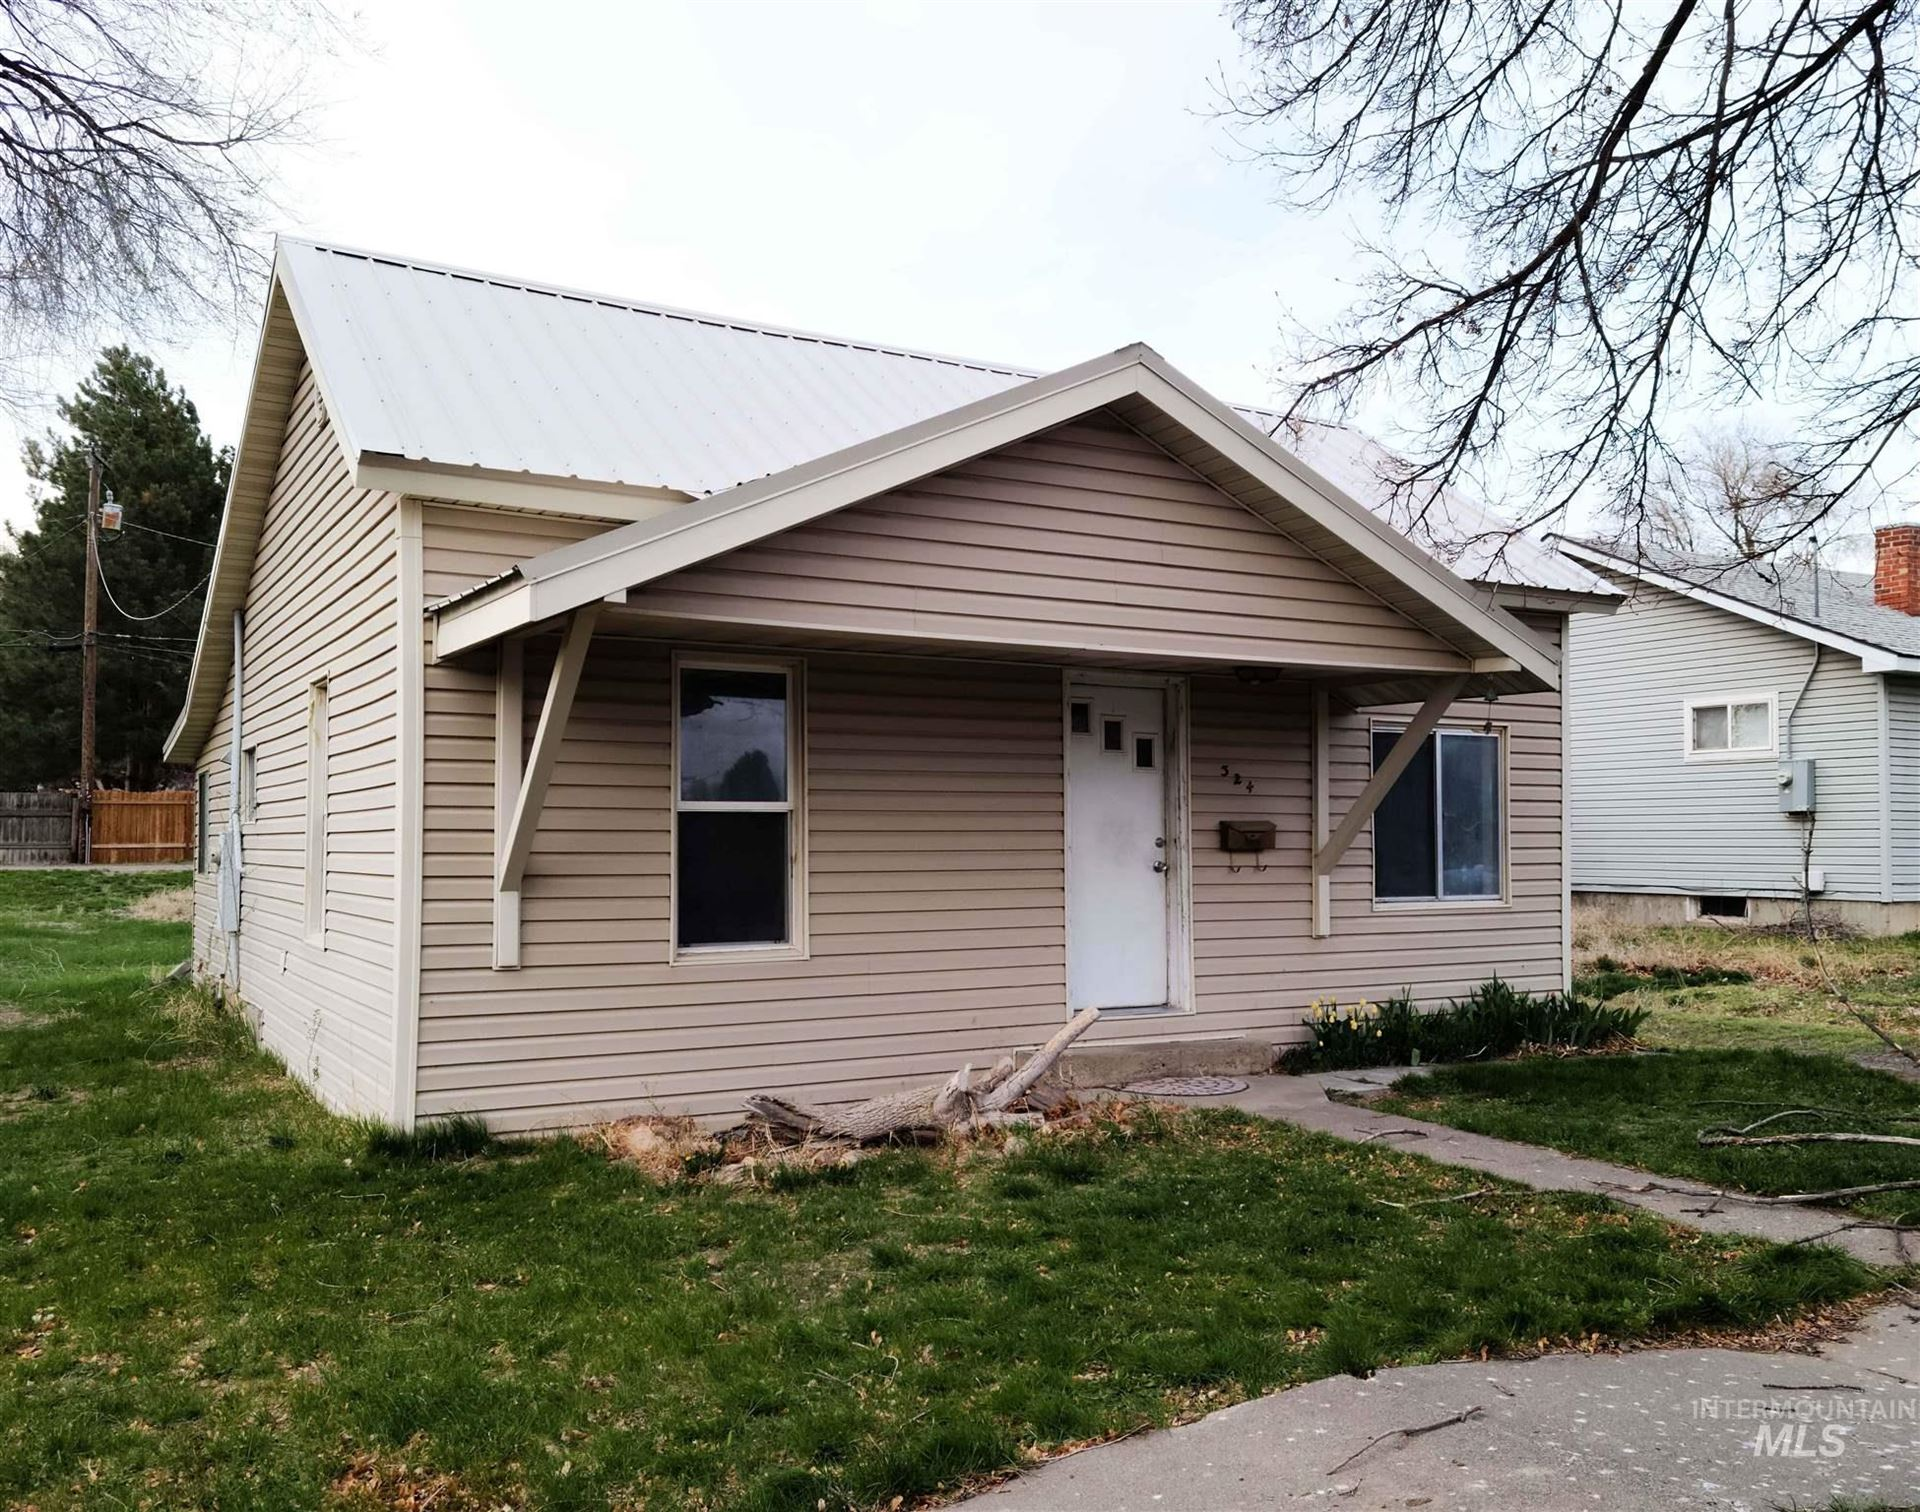 Photo of 324 E Ave D, Jerome, ID 83338 (MLS # 98800228)